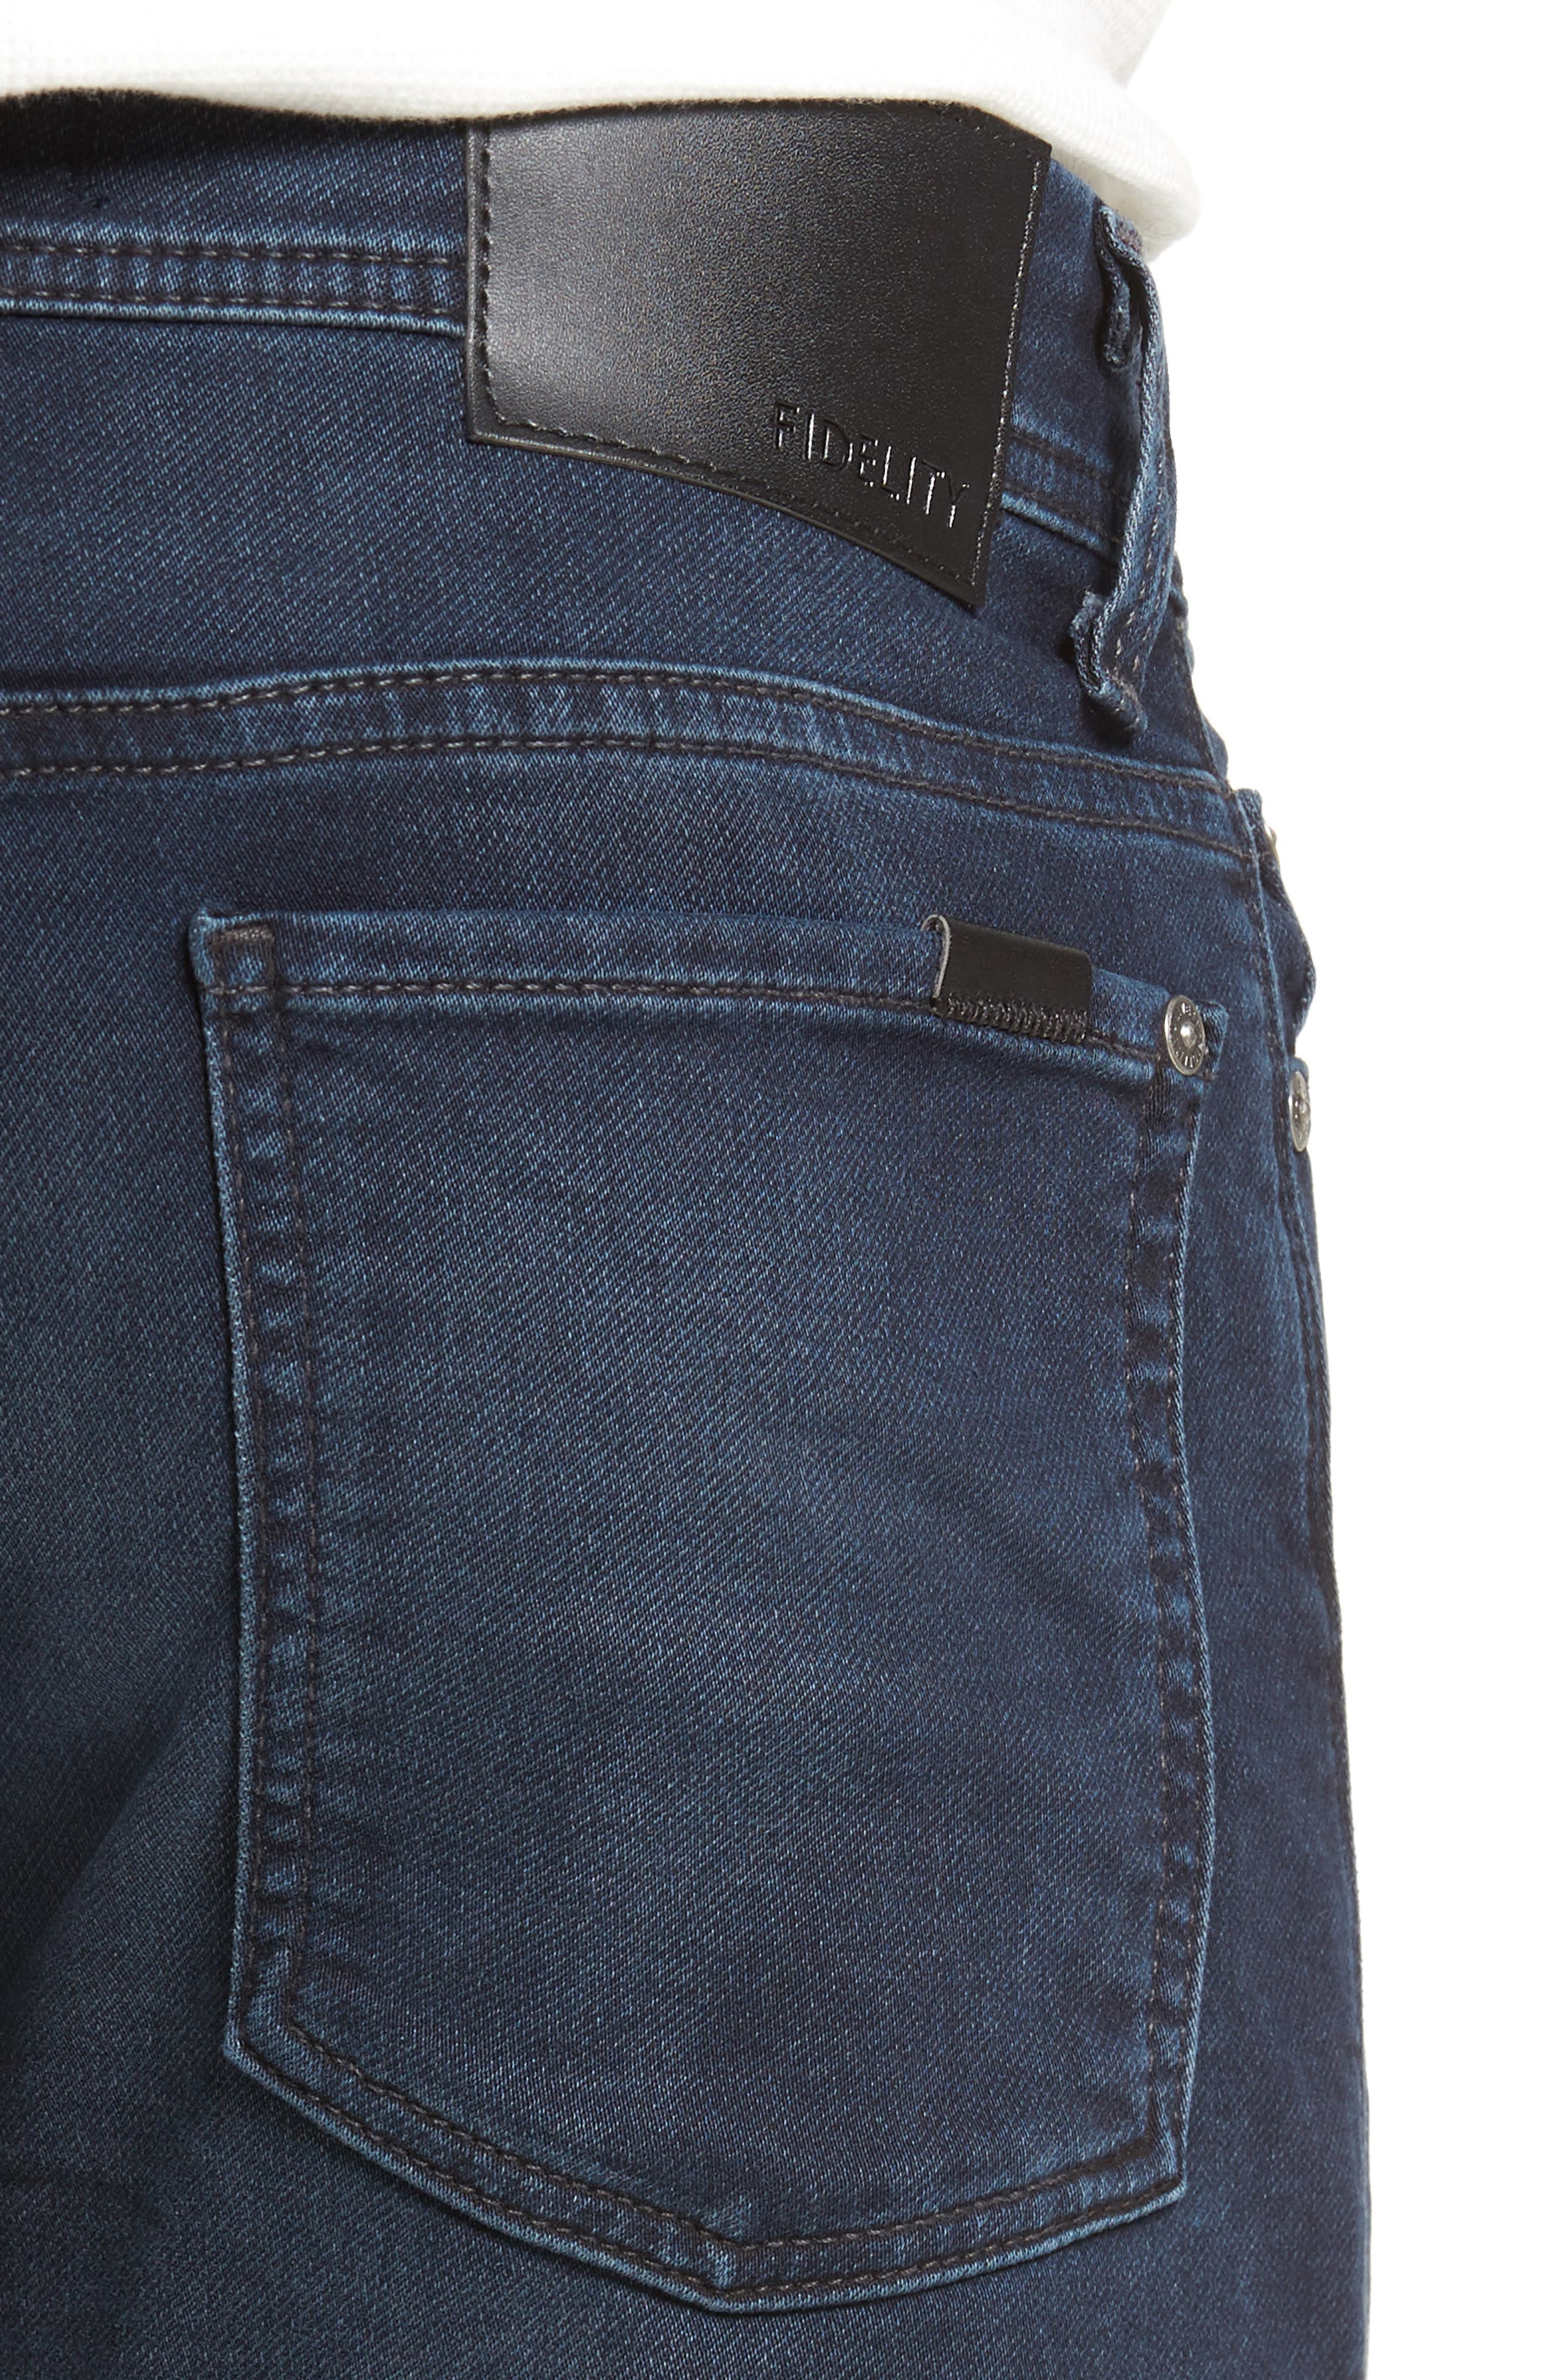 Jimmy Slim Straight Fit Jeans,                             Alternate thumbnail 4, color,                             400